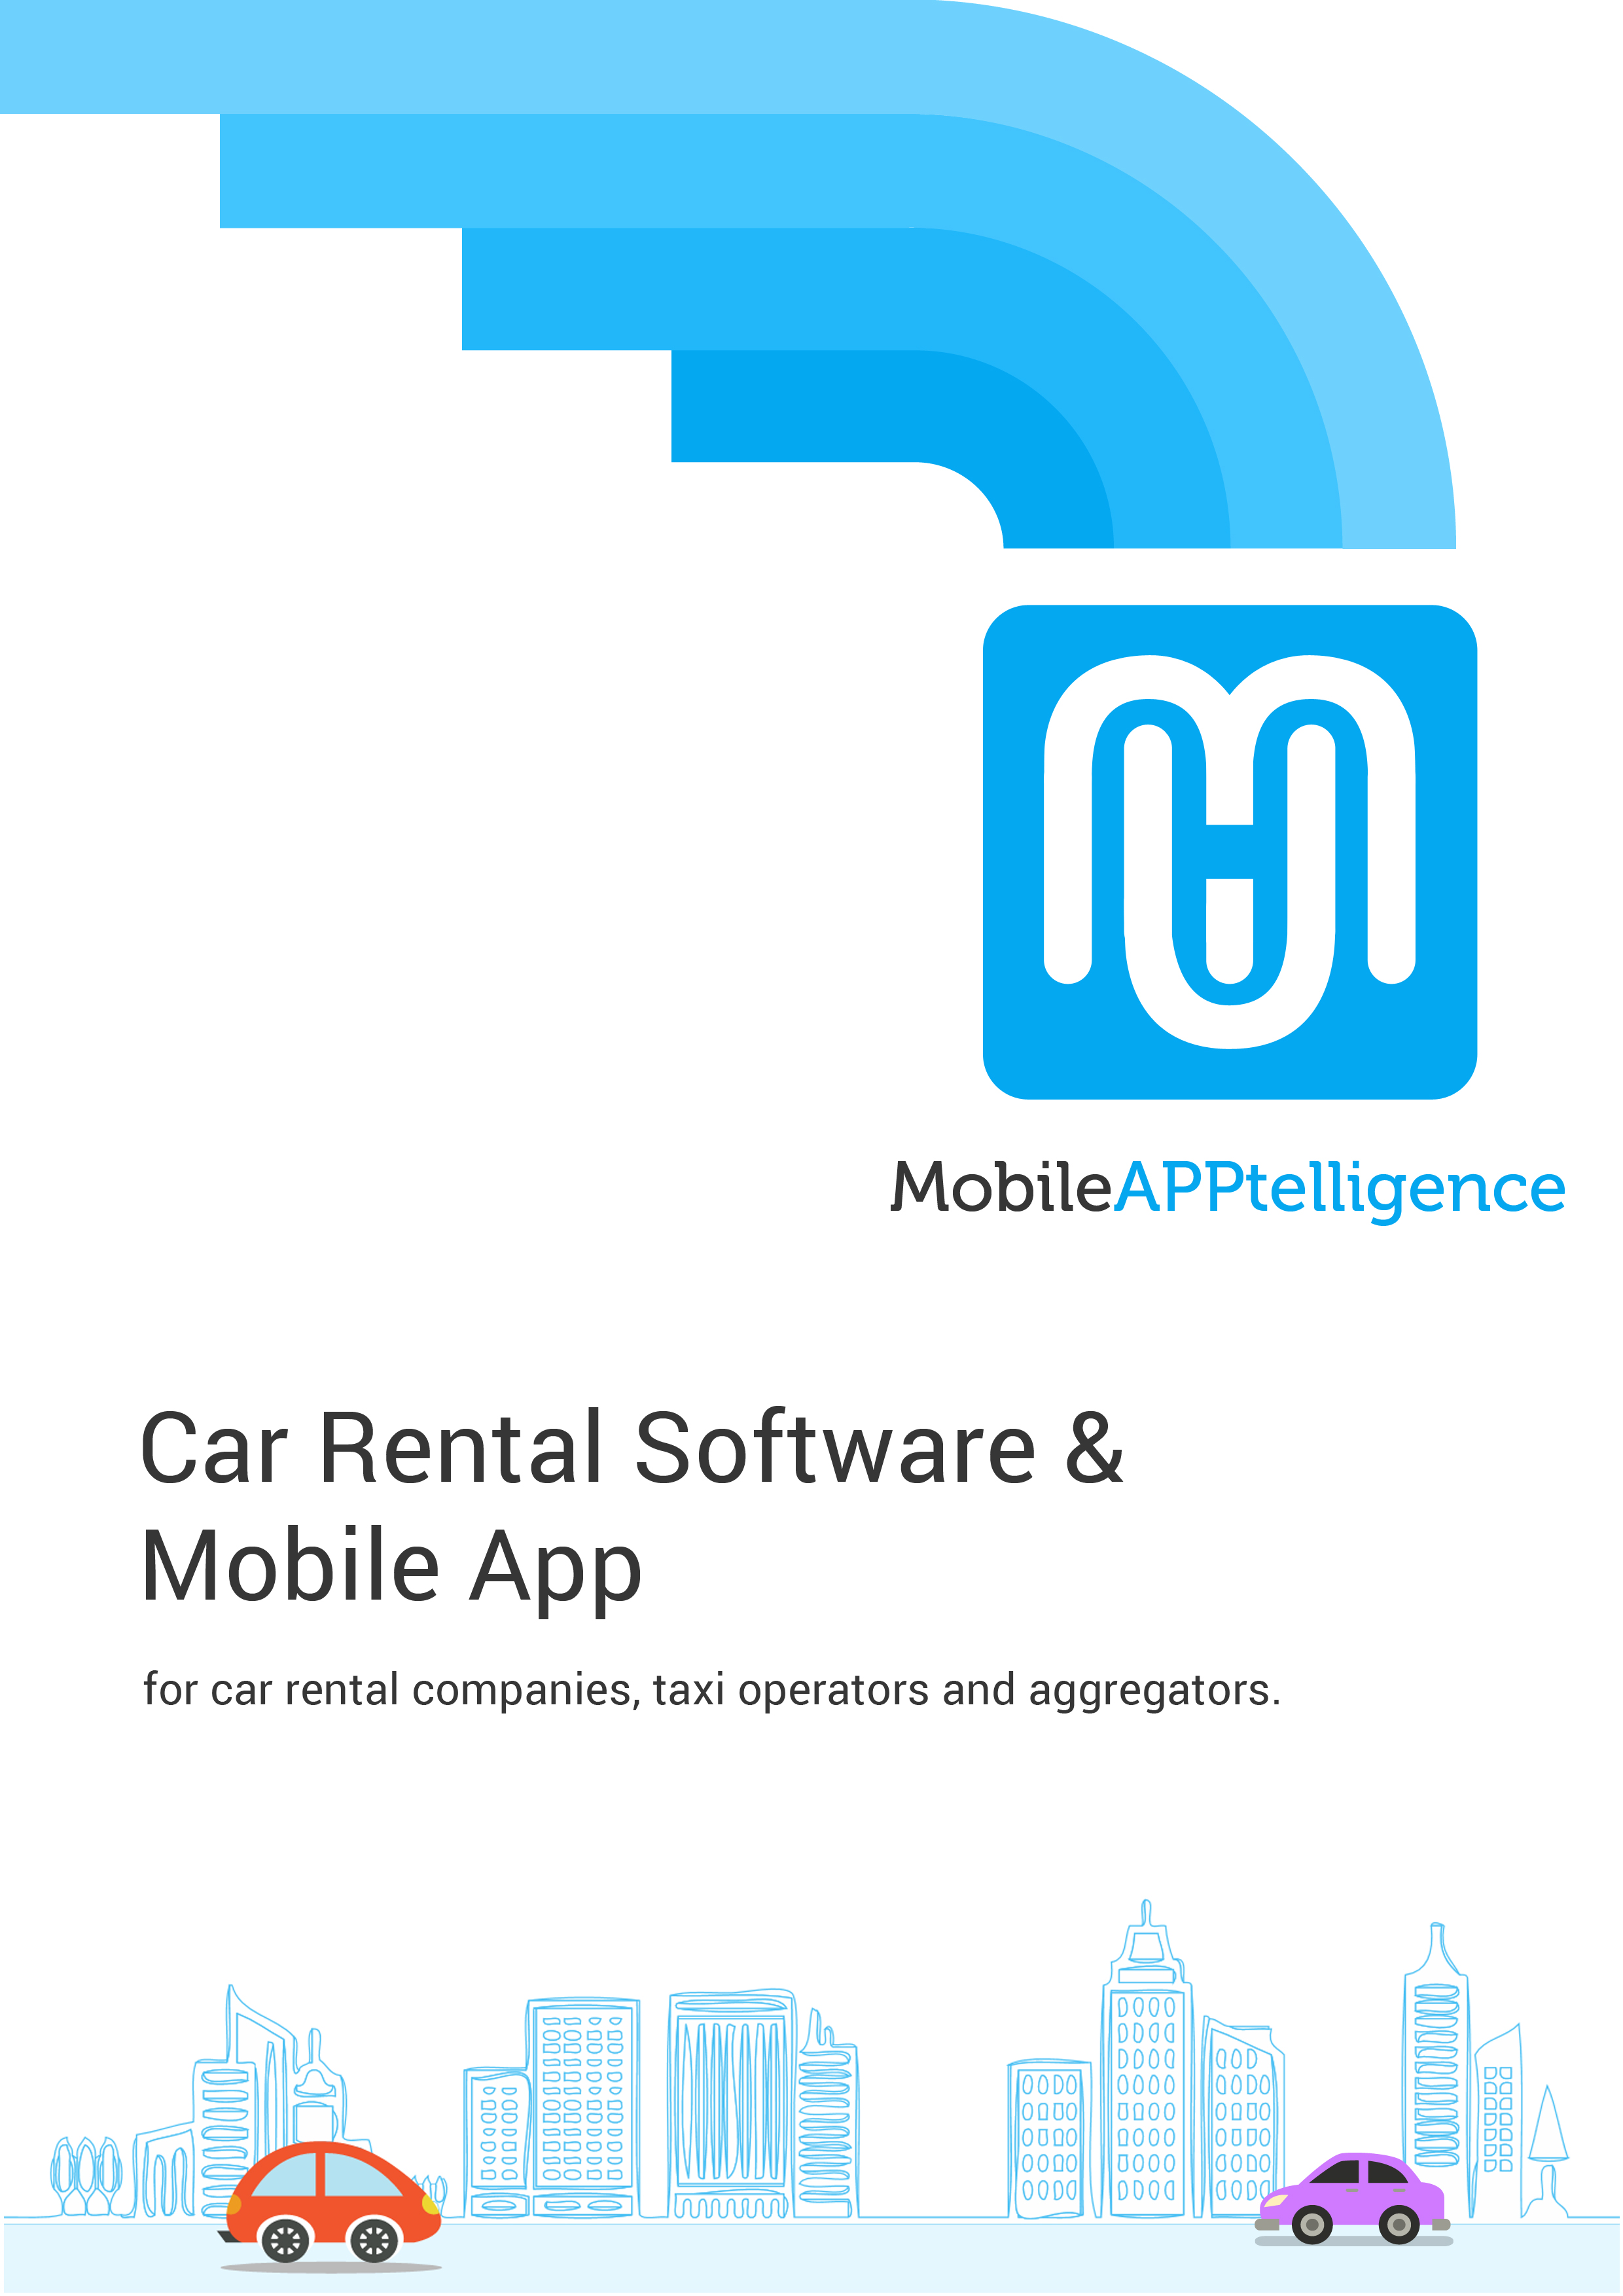 Car rental app for iPhone users